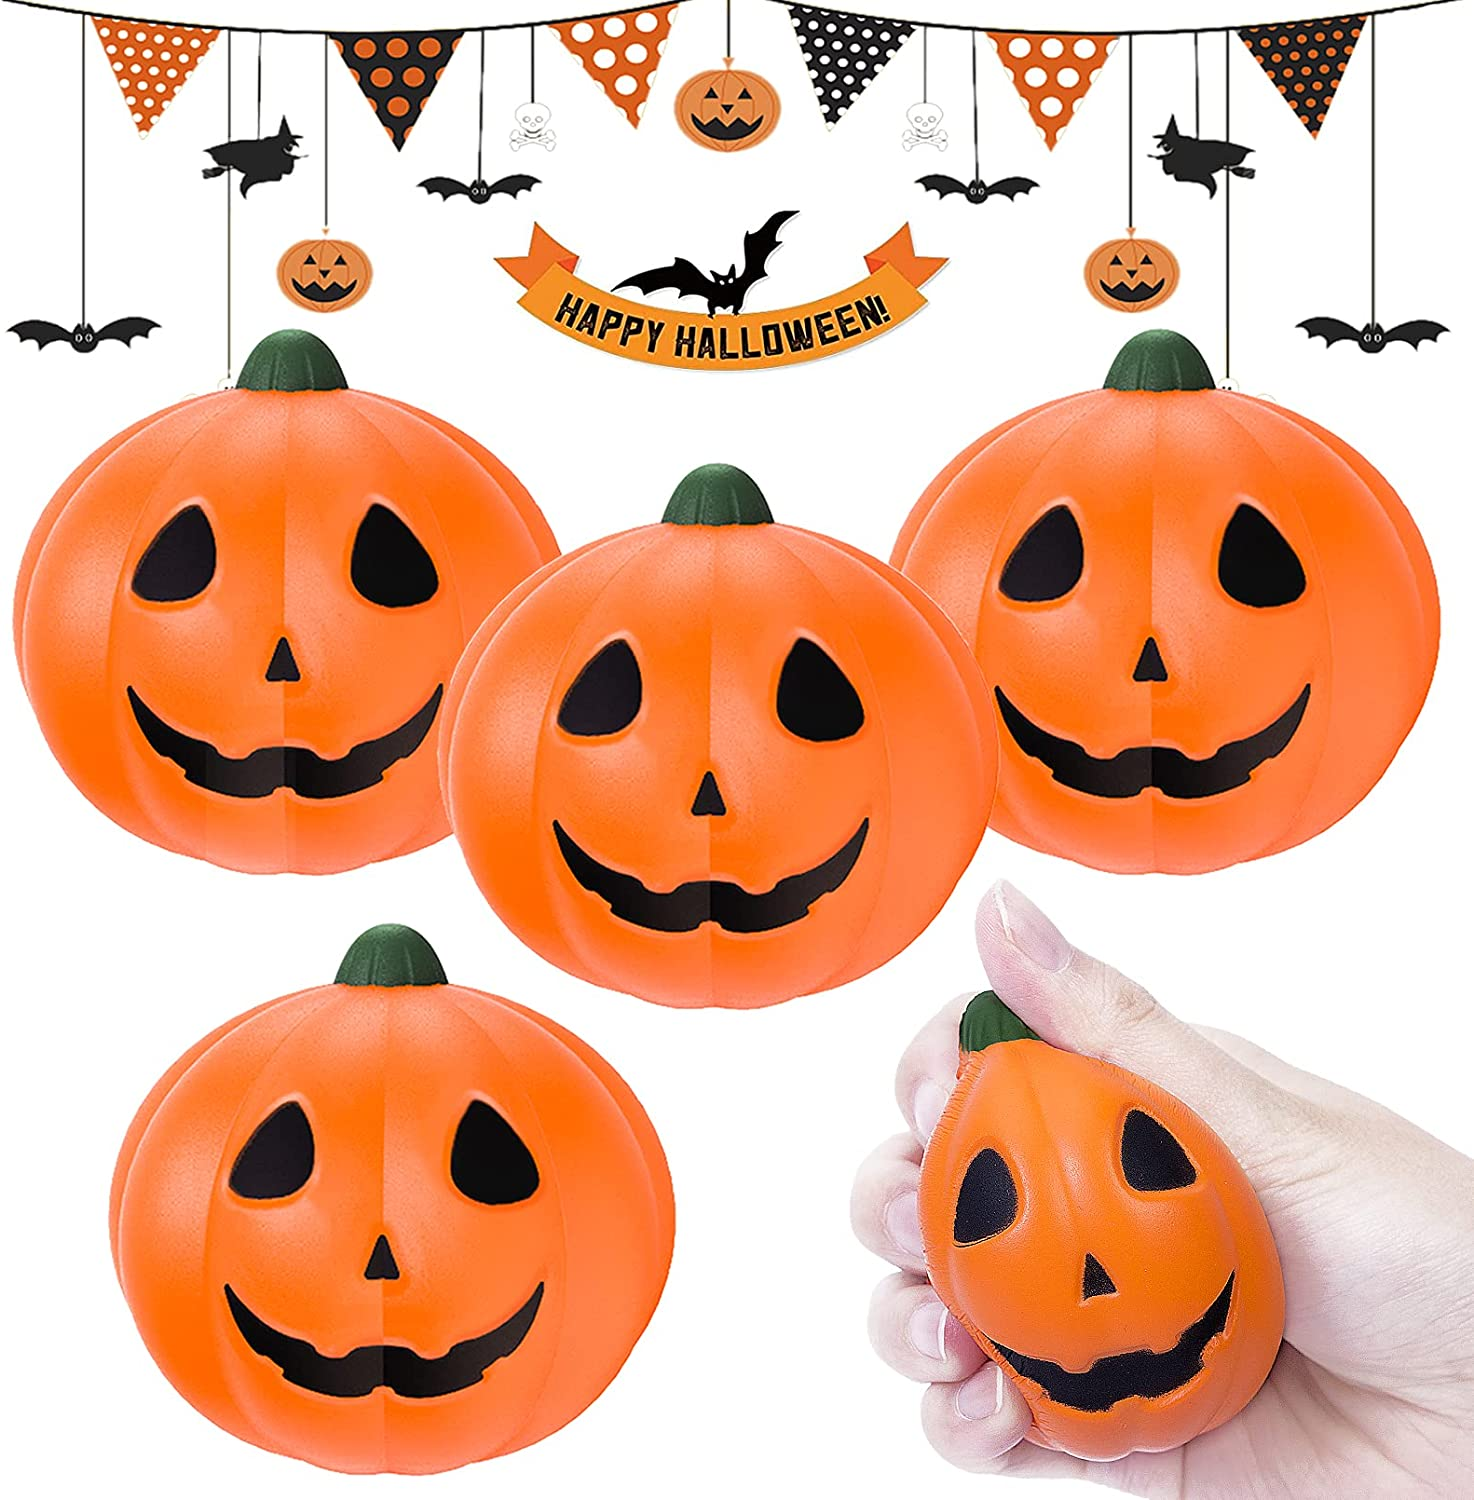 Halloween Squishy Toys Oakland Mall 4 Pcs Str Rising Squishies Pumpkins Special sale item Slow